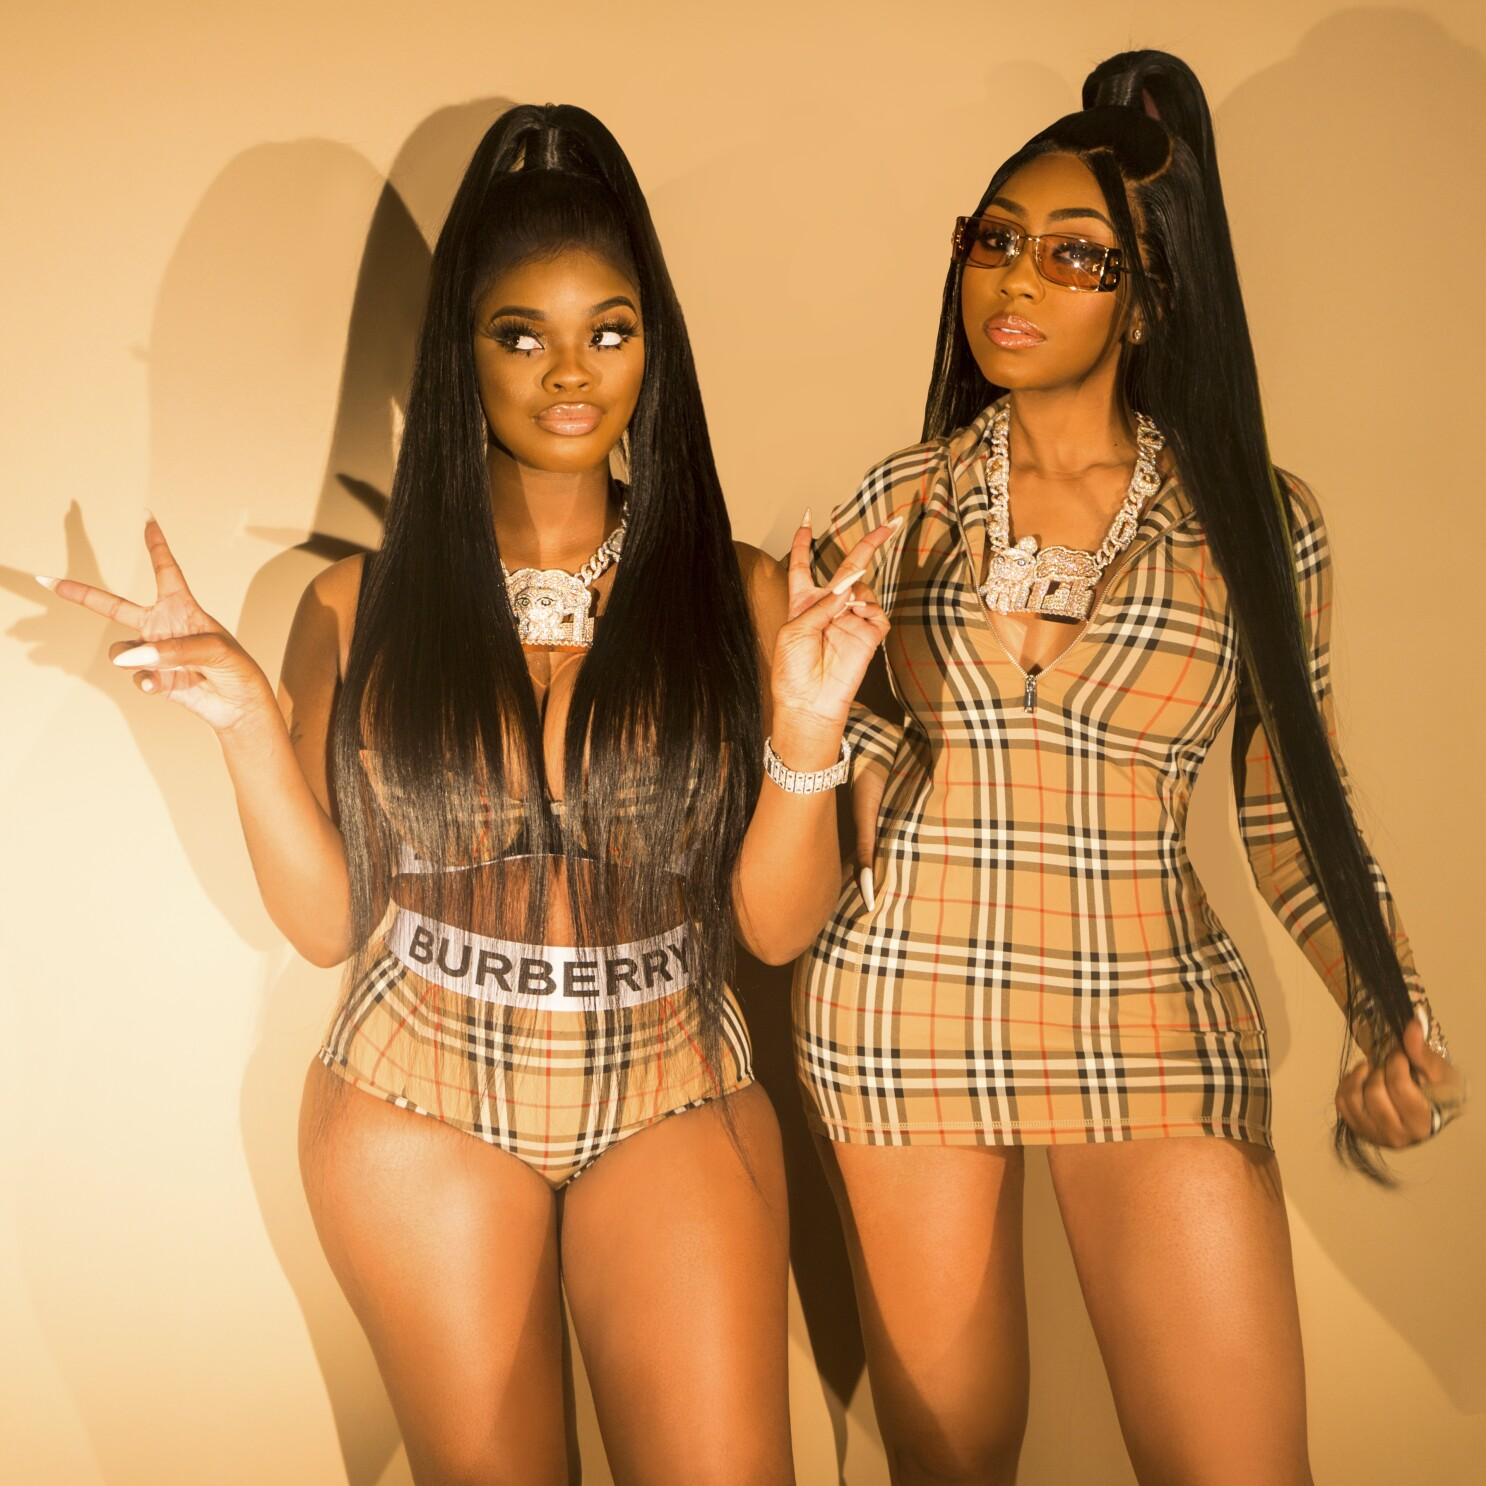 Raunch rap duo City Girls return to stake their claim - Los Angeles Times